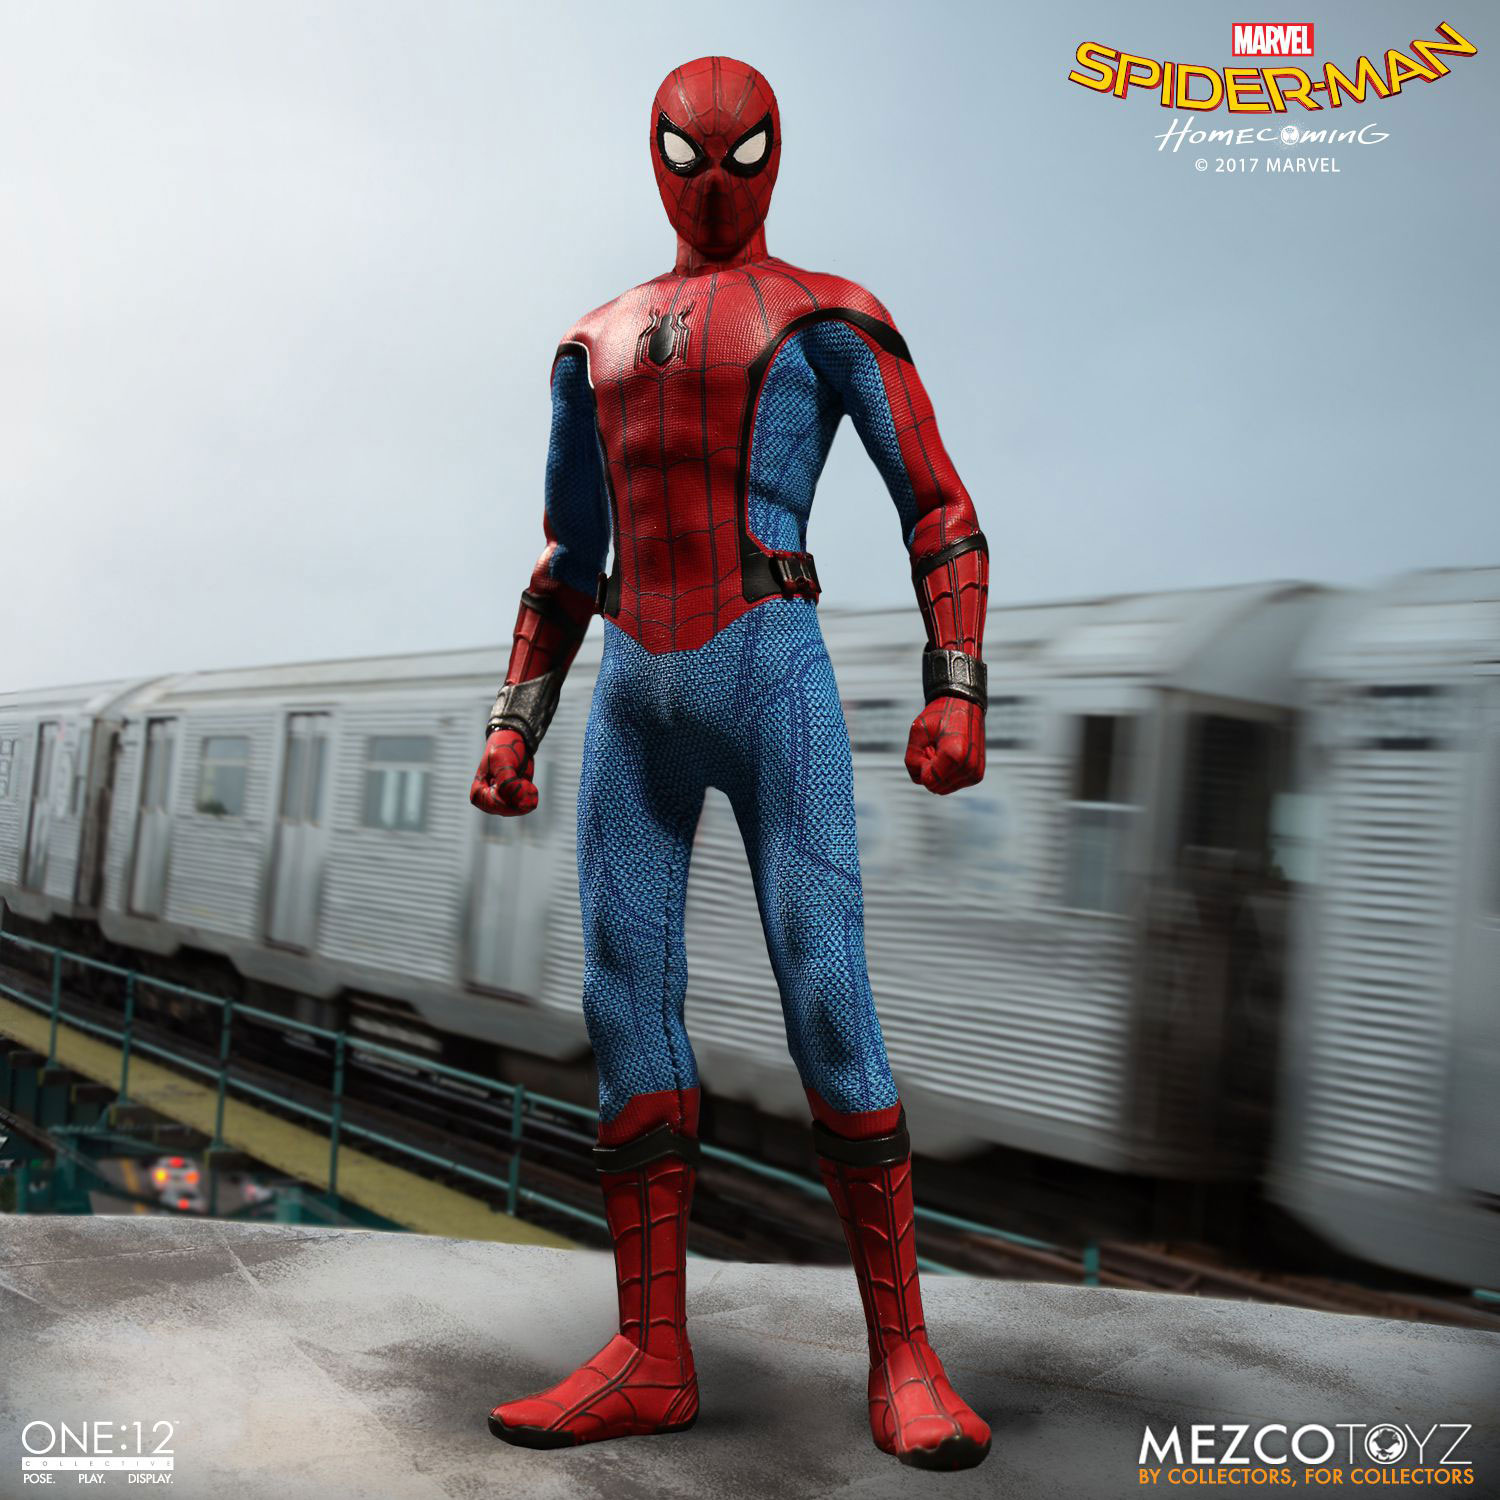 spiderman-homecoming-mezco-one-12-collective-action-figure-1